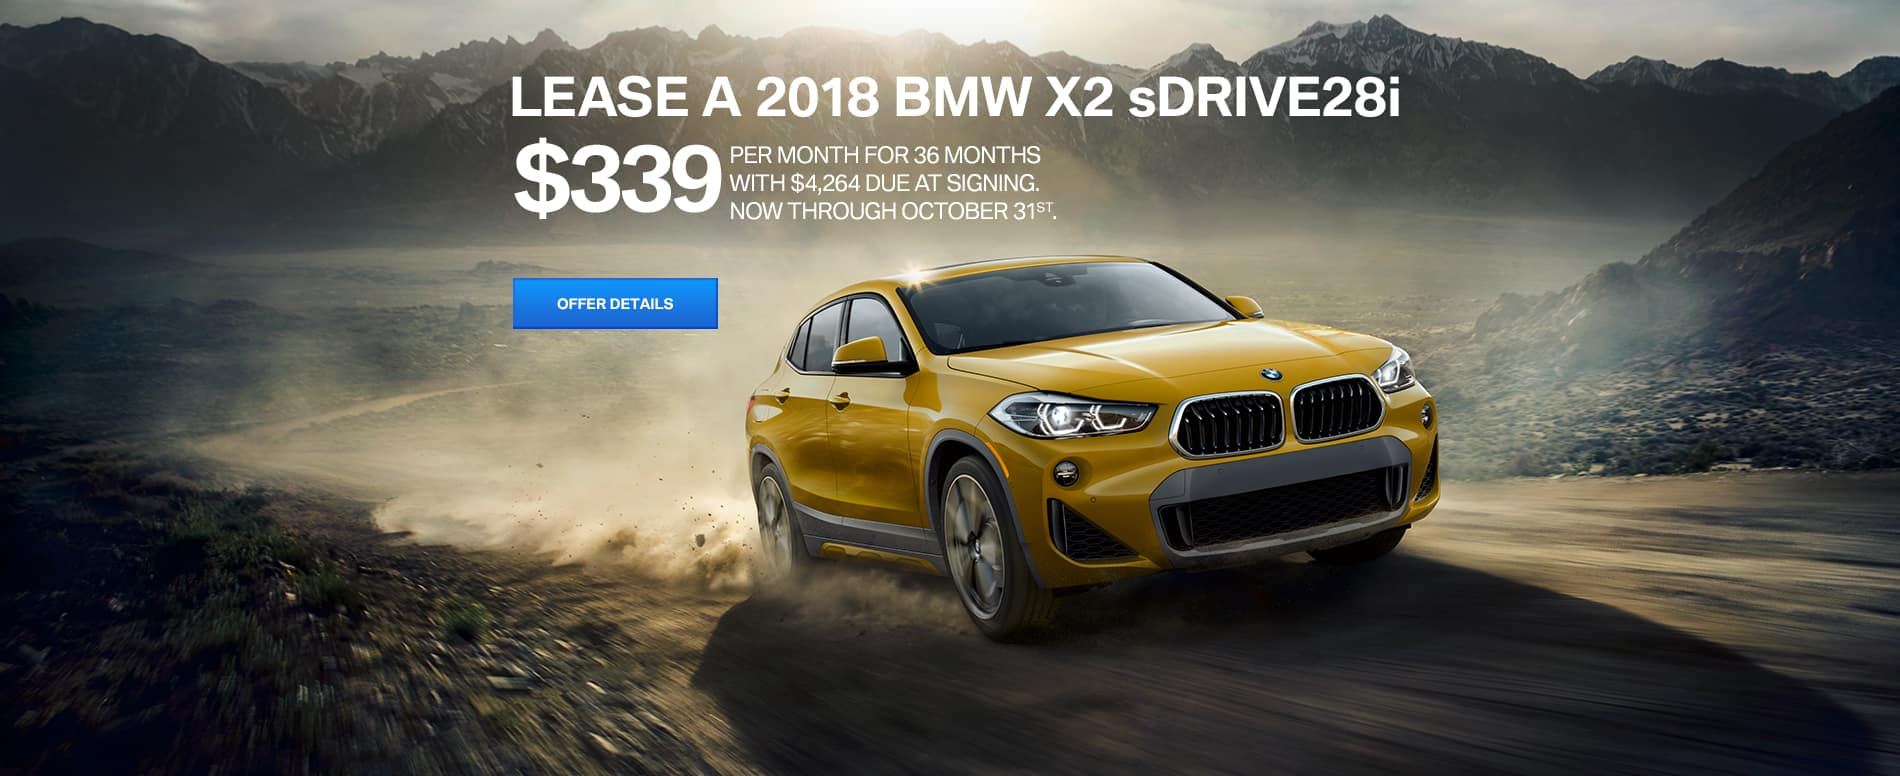 BMW X2 sDRIVE28i